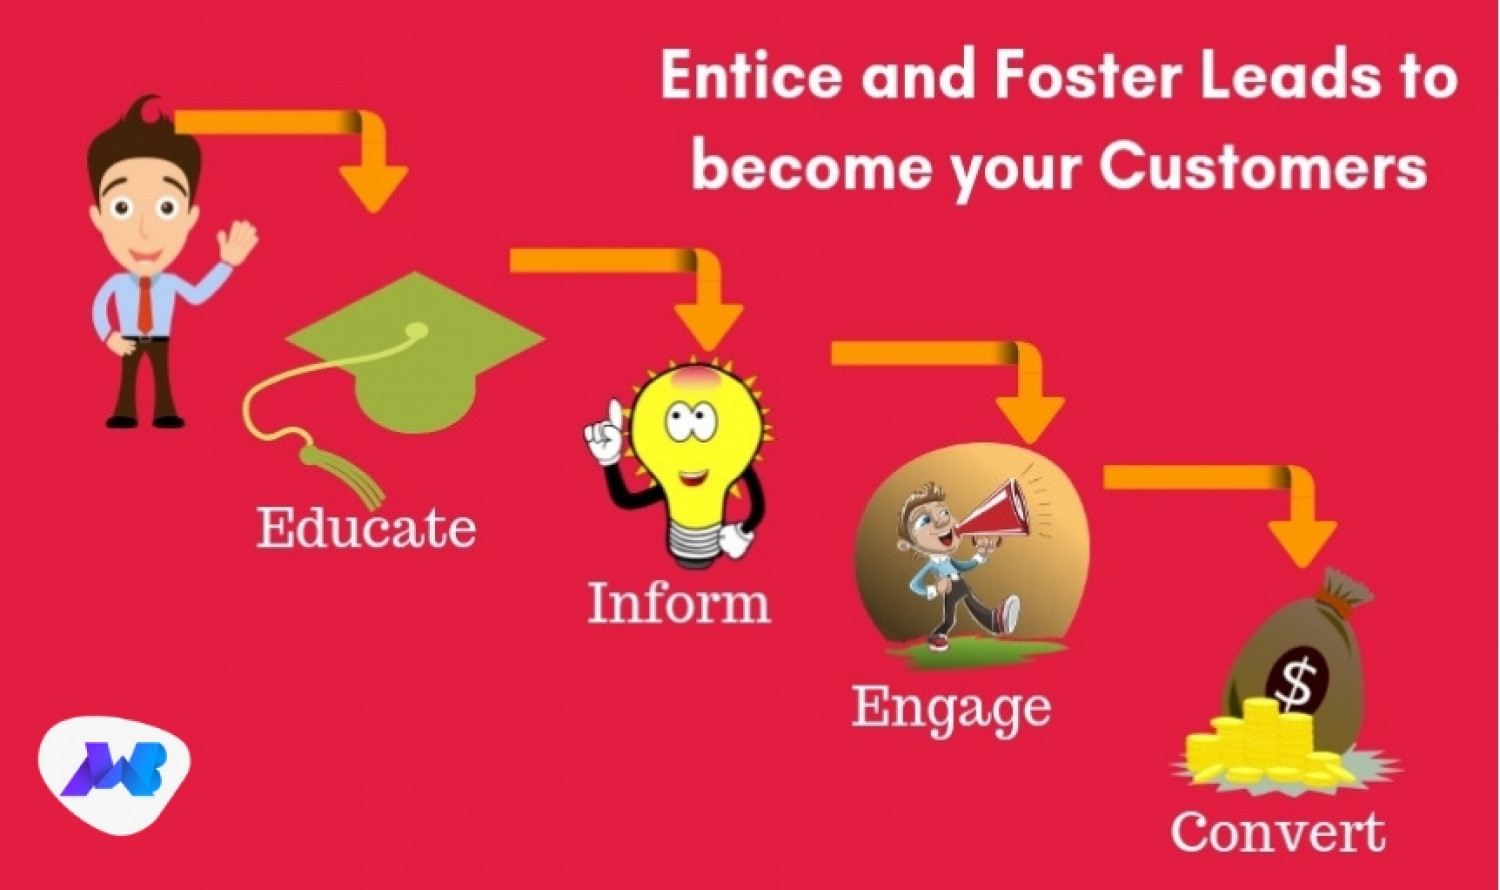 Process of Nurturing Leads Infographic